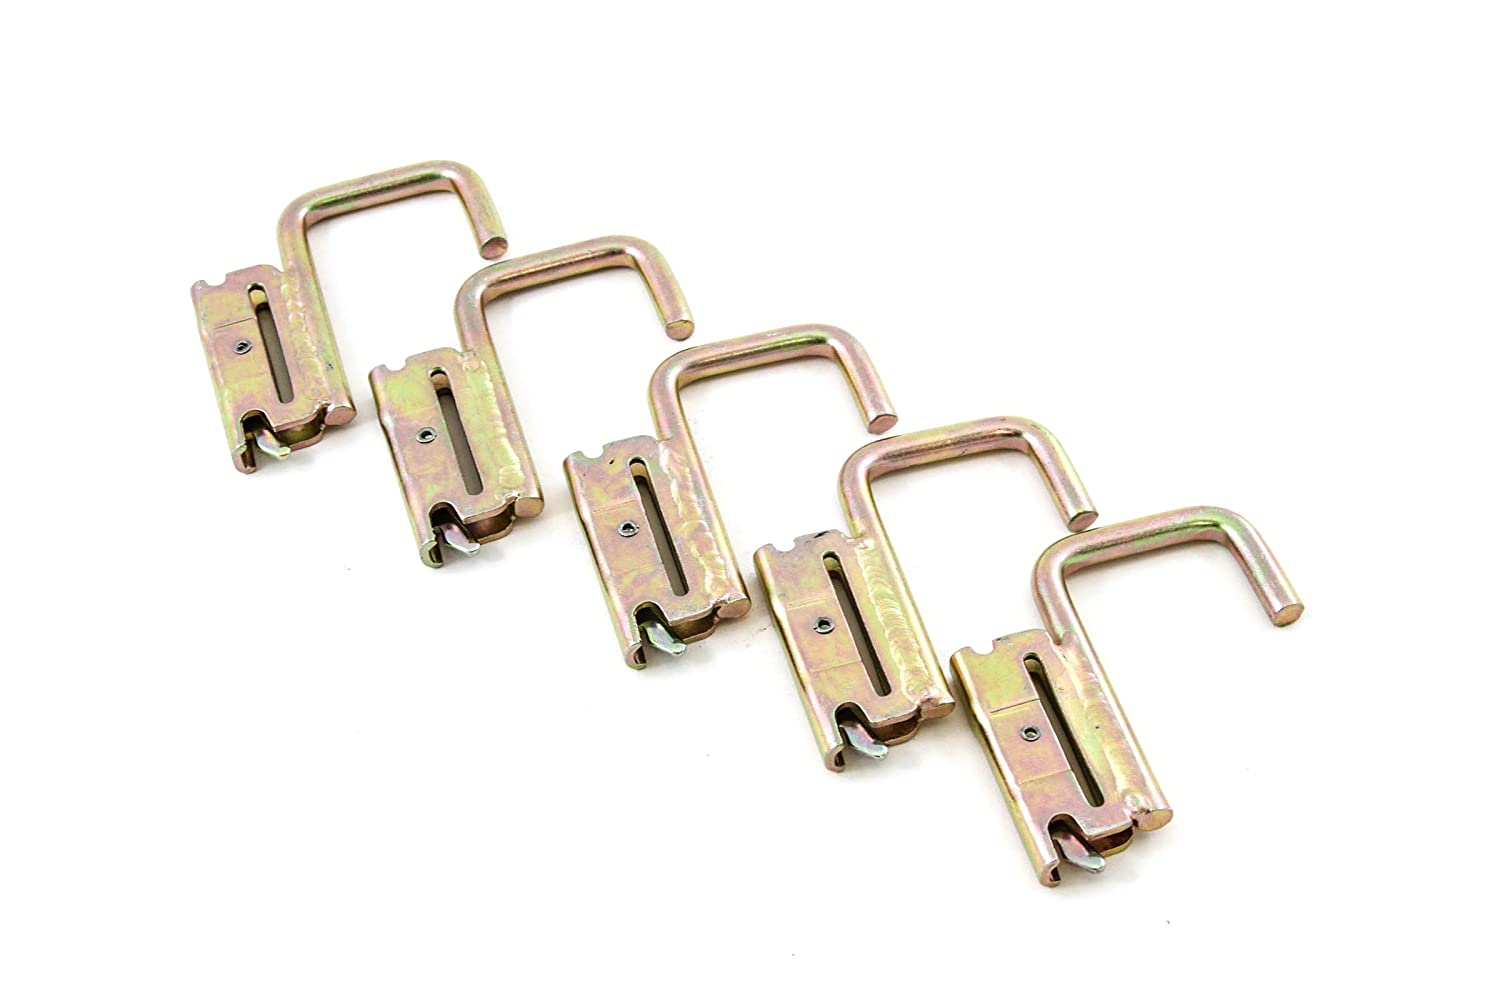 Red Hound Auto 5 Square J Hooks for E Track System Trailer Flatbed Jacket Rack